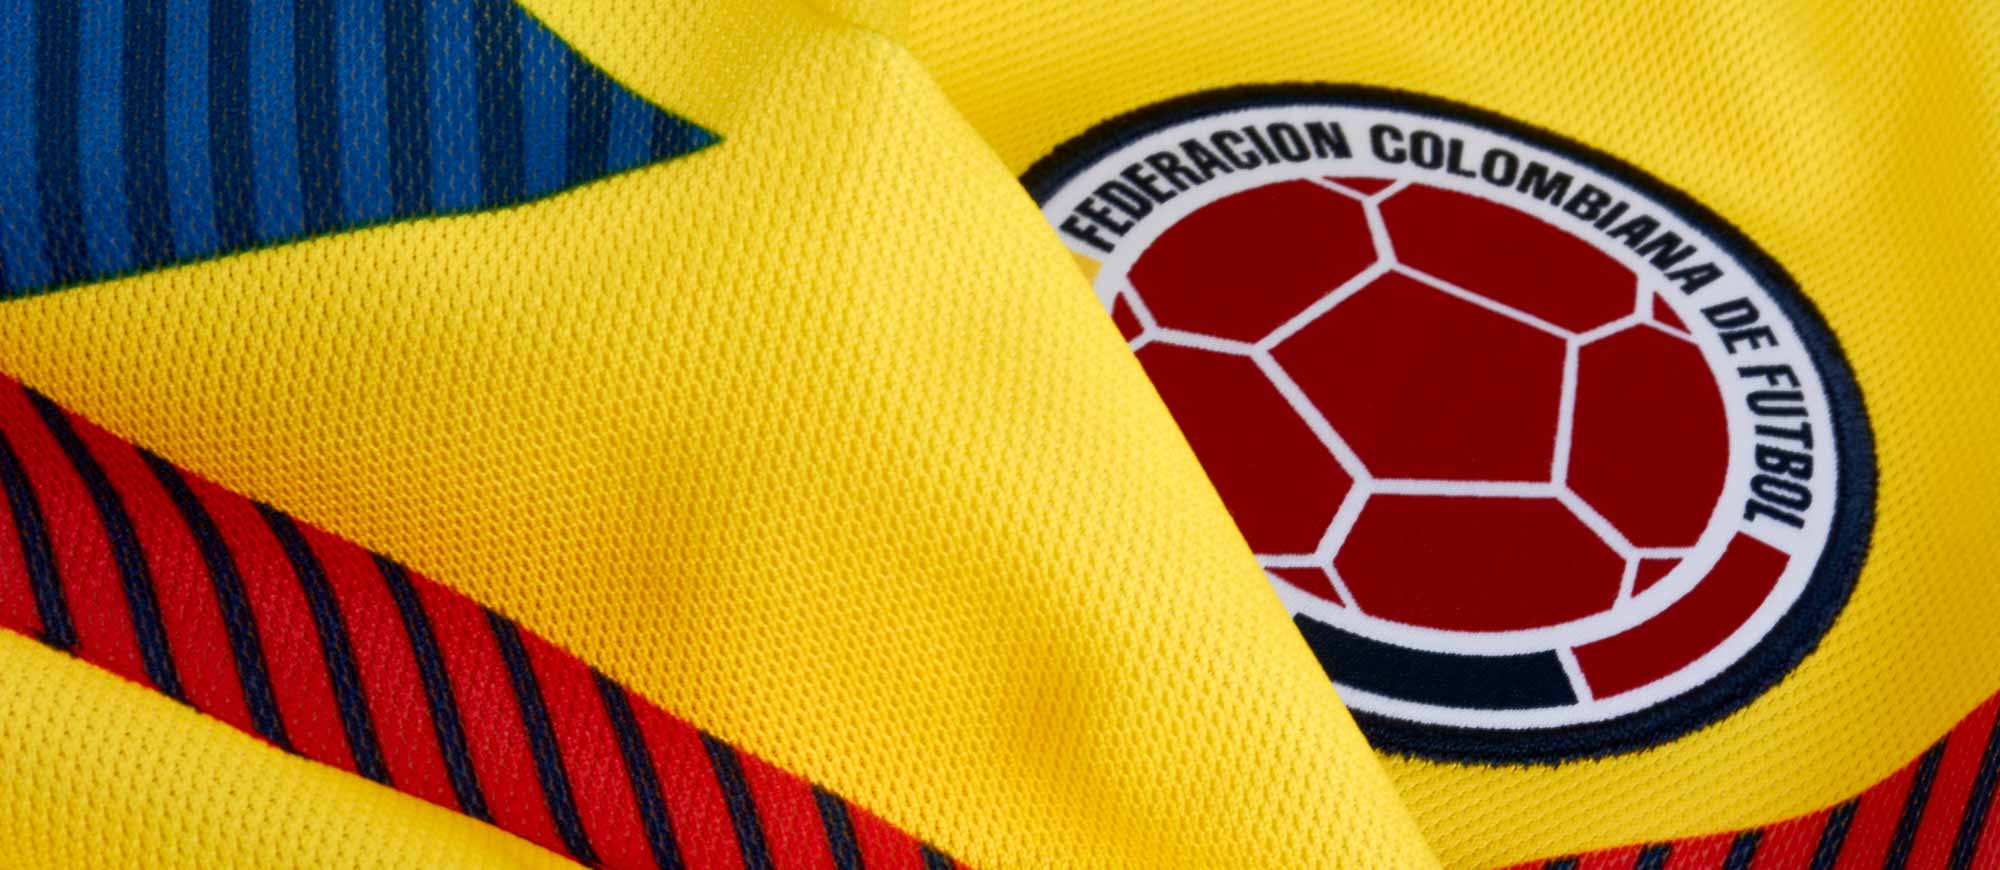 adidas Colombia L S Home Jersey 2018-19 - SoccerPro.com c62a31ffd